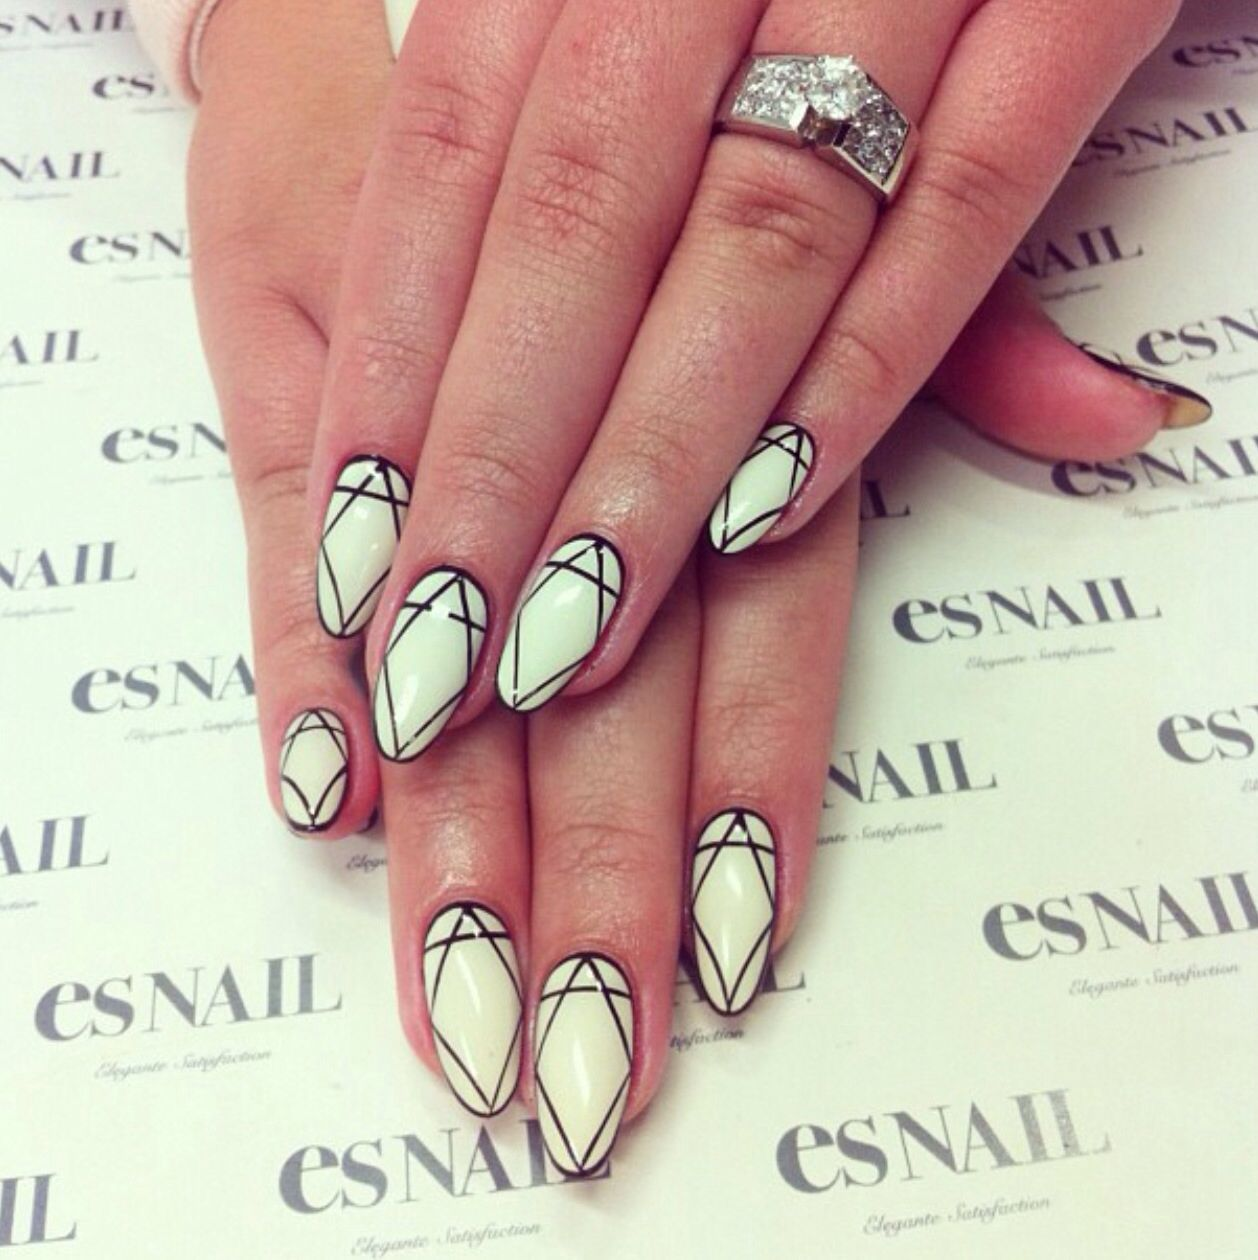 ES nail, nail art, black and white nail polish, diamond, diamonds ...